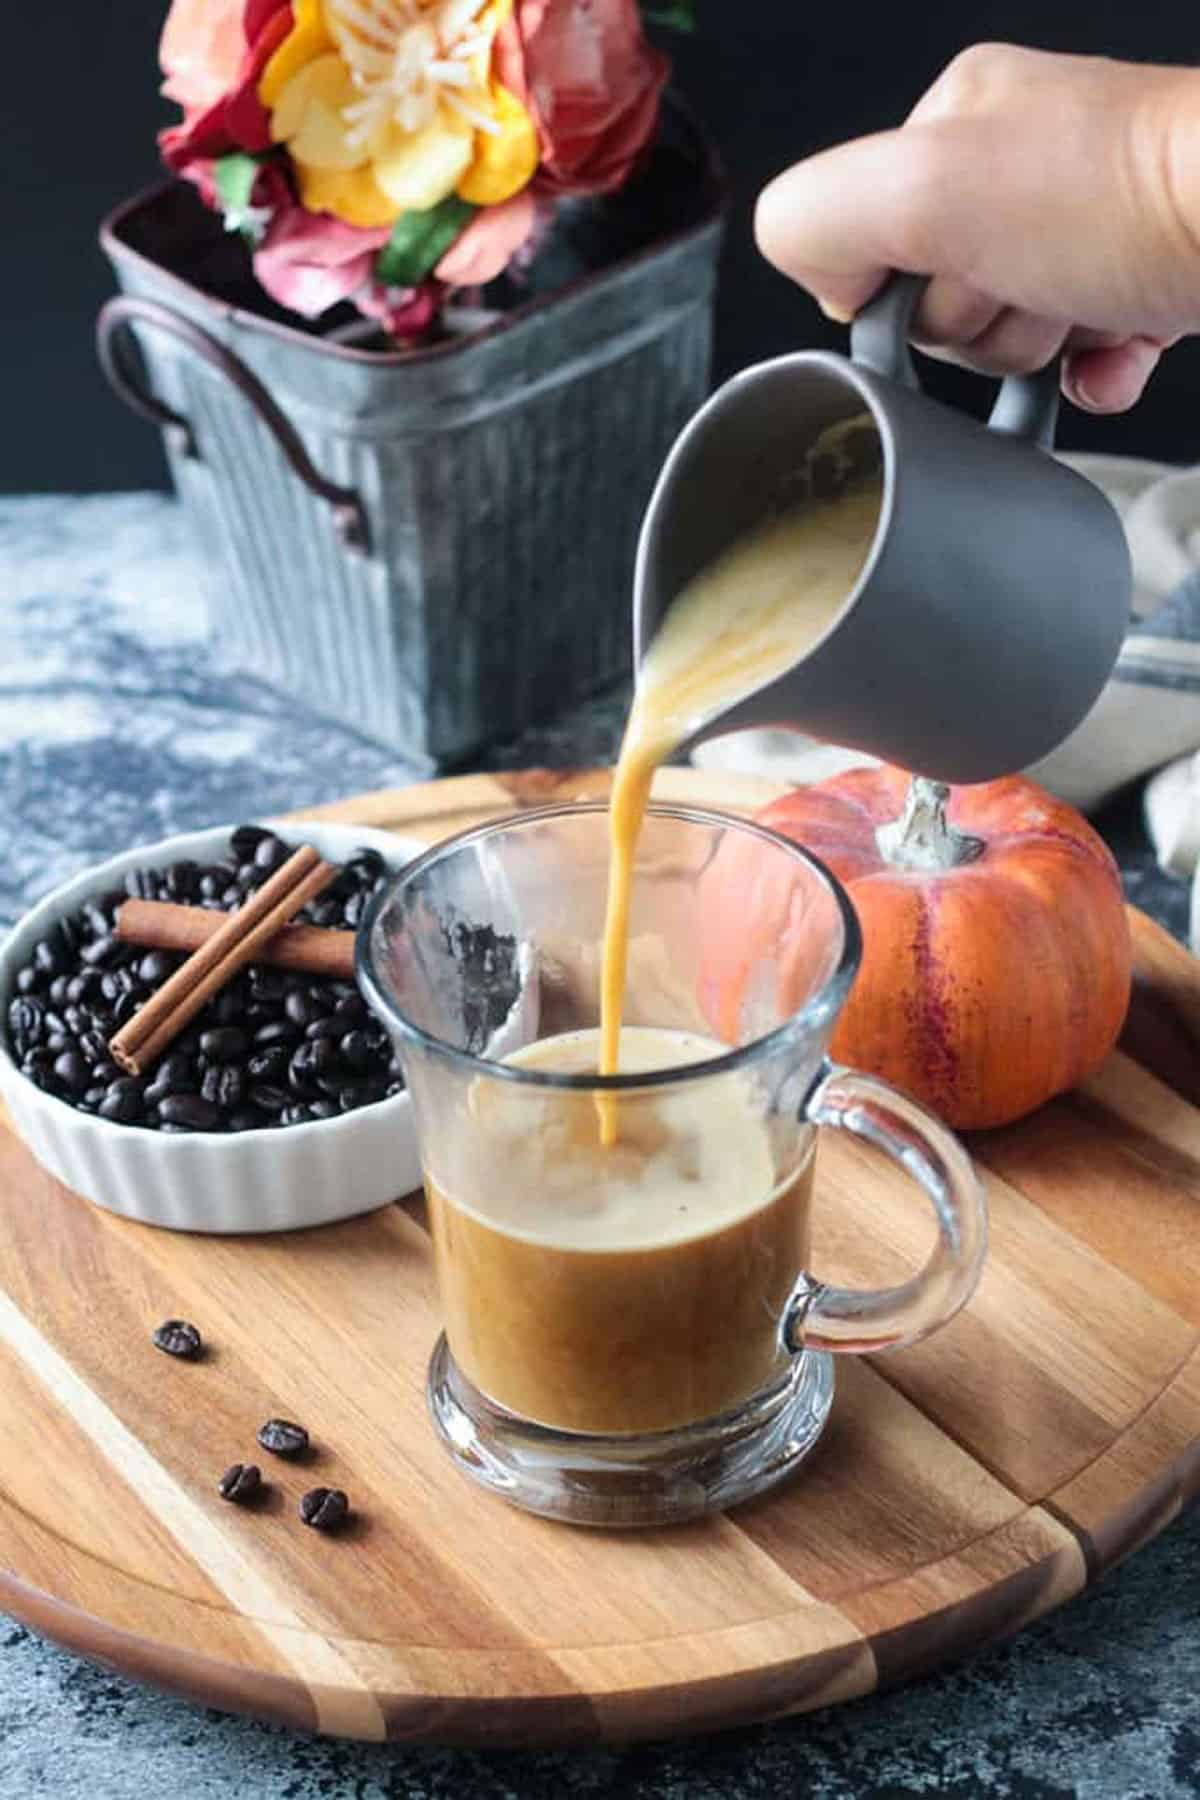 Latte being made by pouring the pumpkin milk into a glass of coffee.